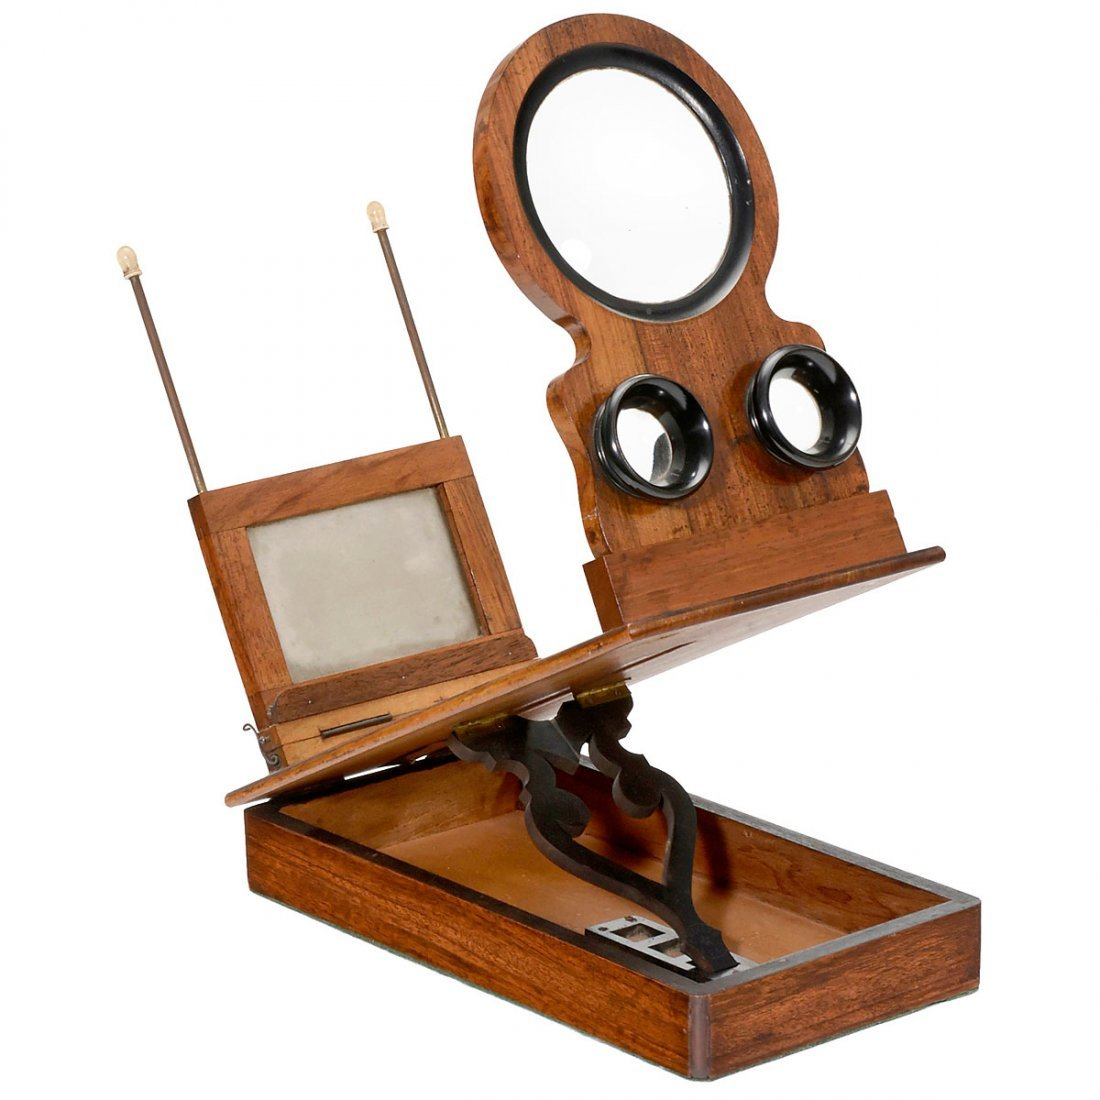 Stereo Graphoscope for Pictures and Slides, c. 1900